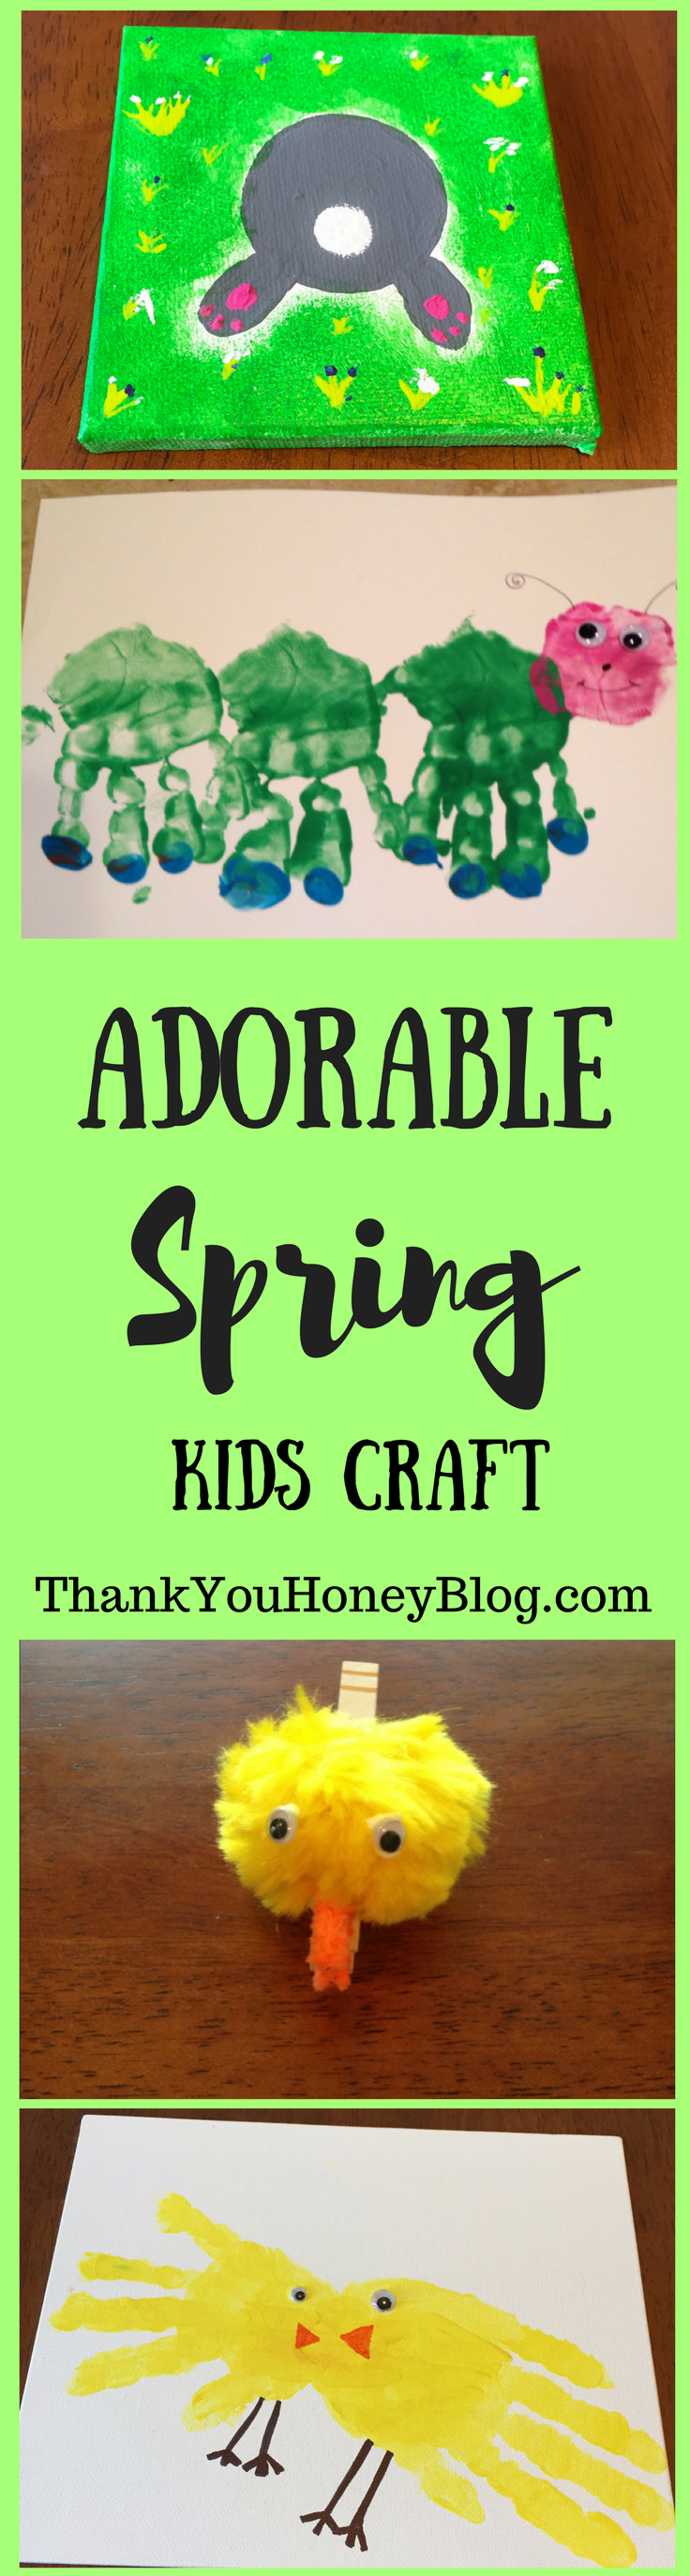 Adorable Spring Kids Craft